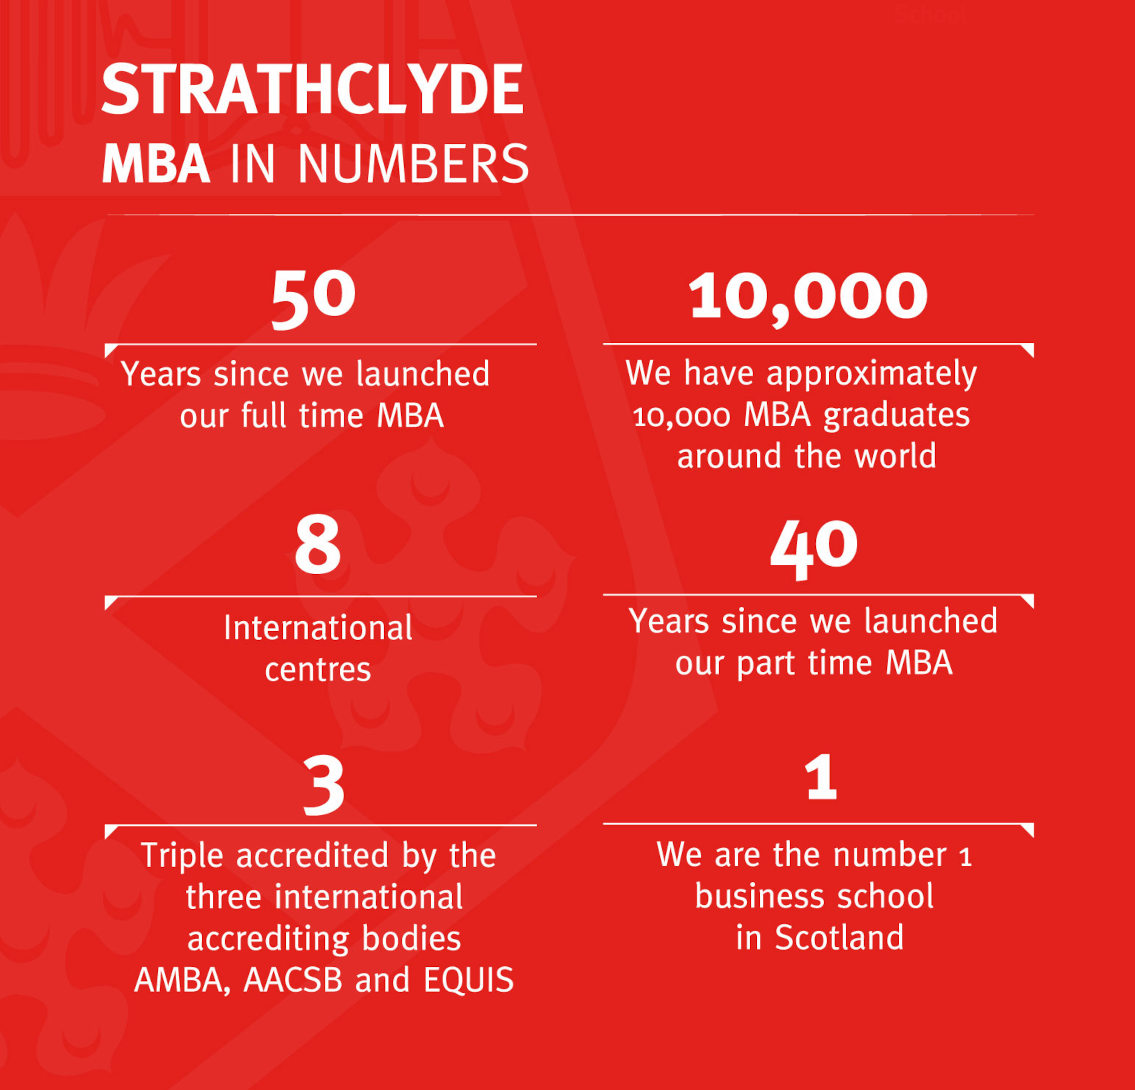 Strathclyde in Numbers